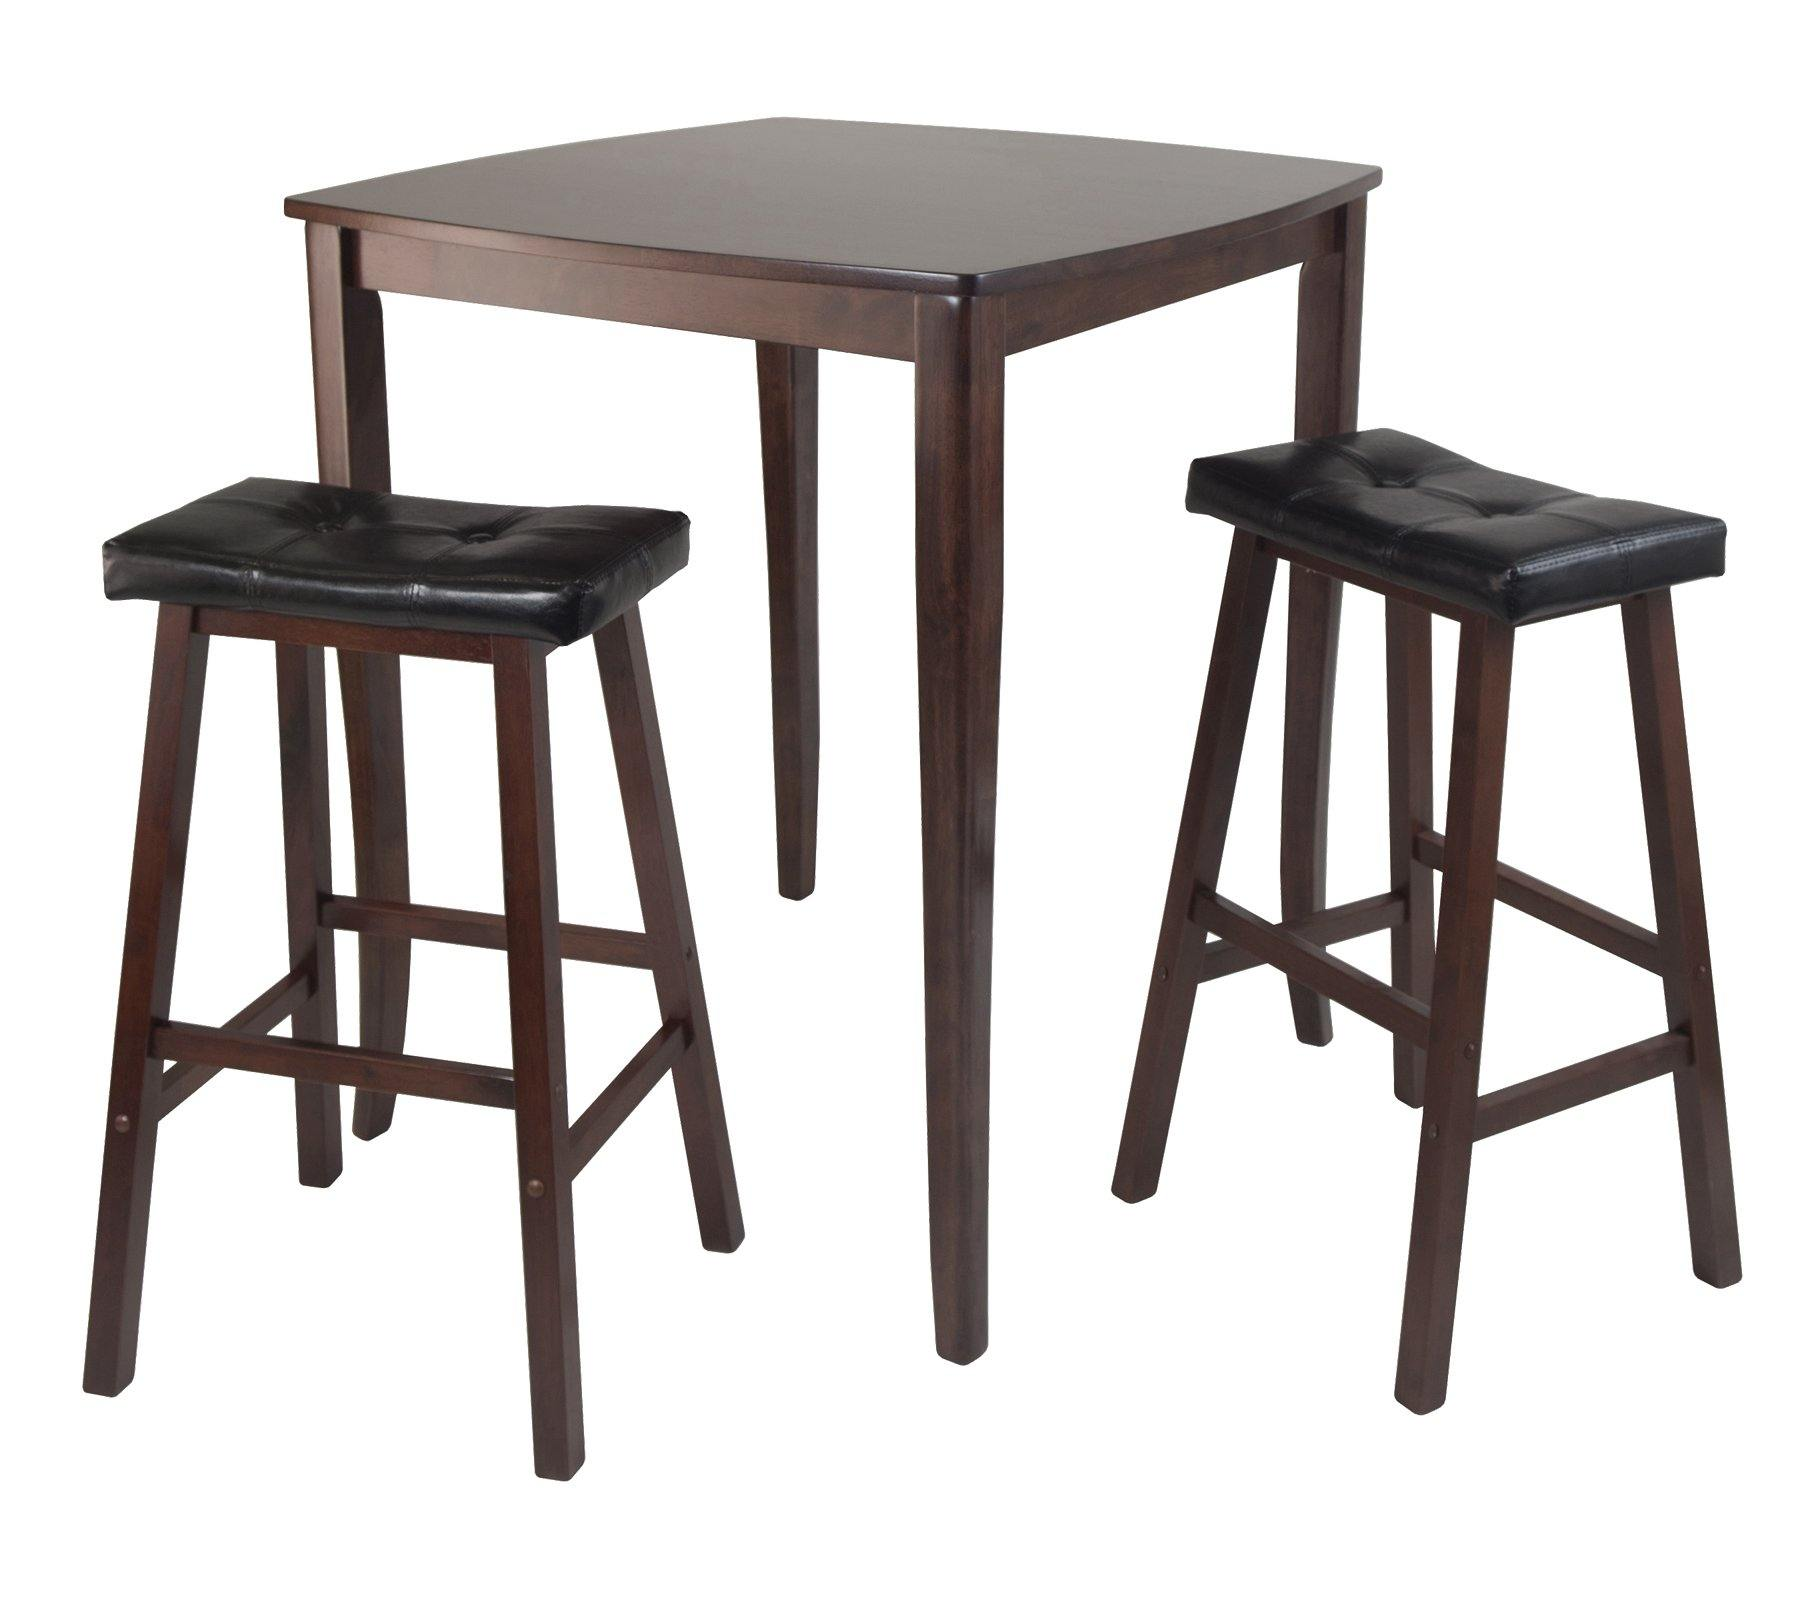 3-Pc Inglewood High/Pub Dining Table with Cushioned Saddle Stool - My USA Furniture